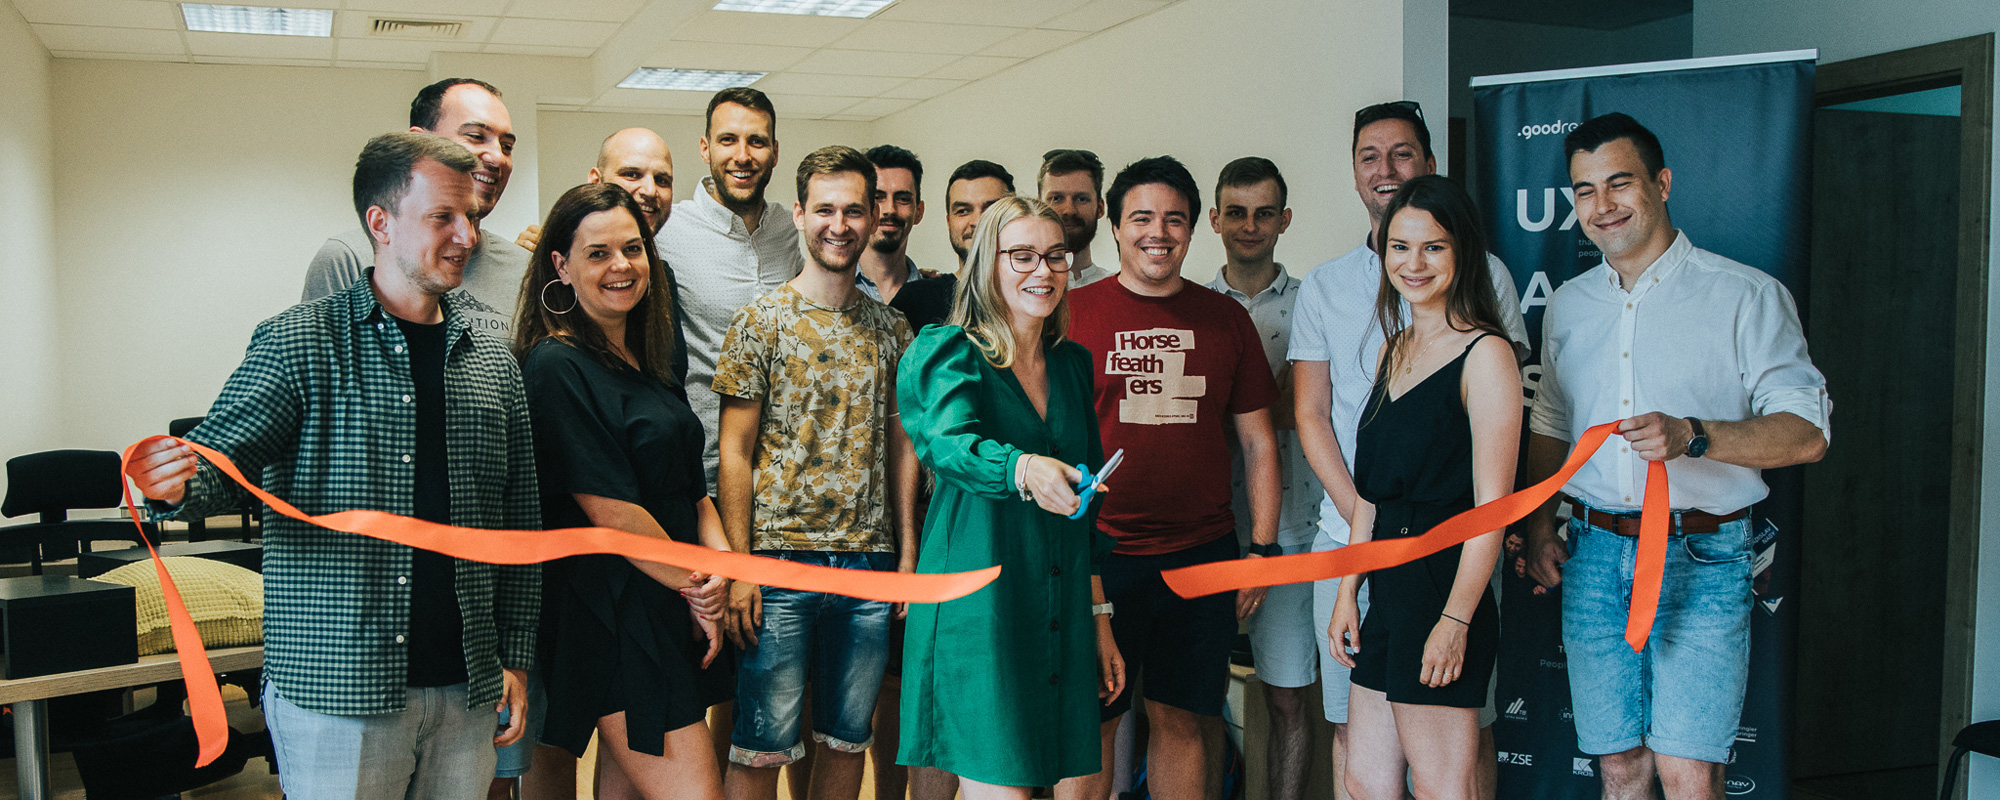 Say hello to new GoodRequest office in Košice!